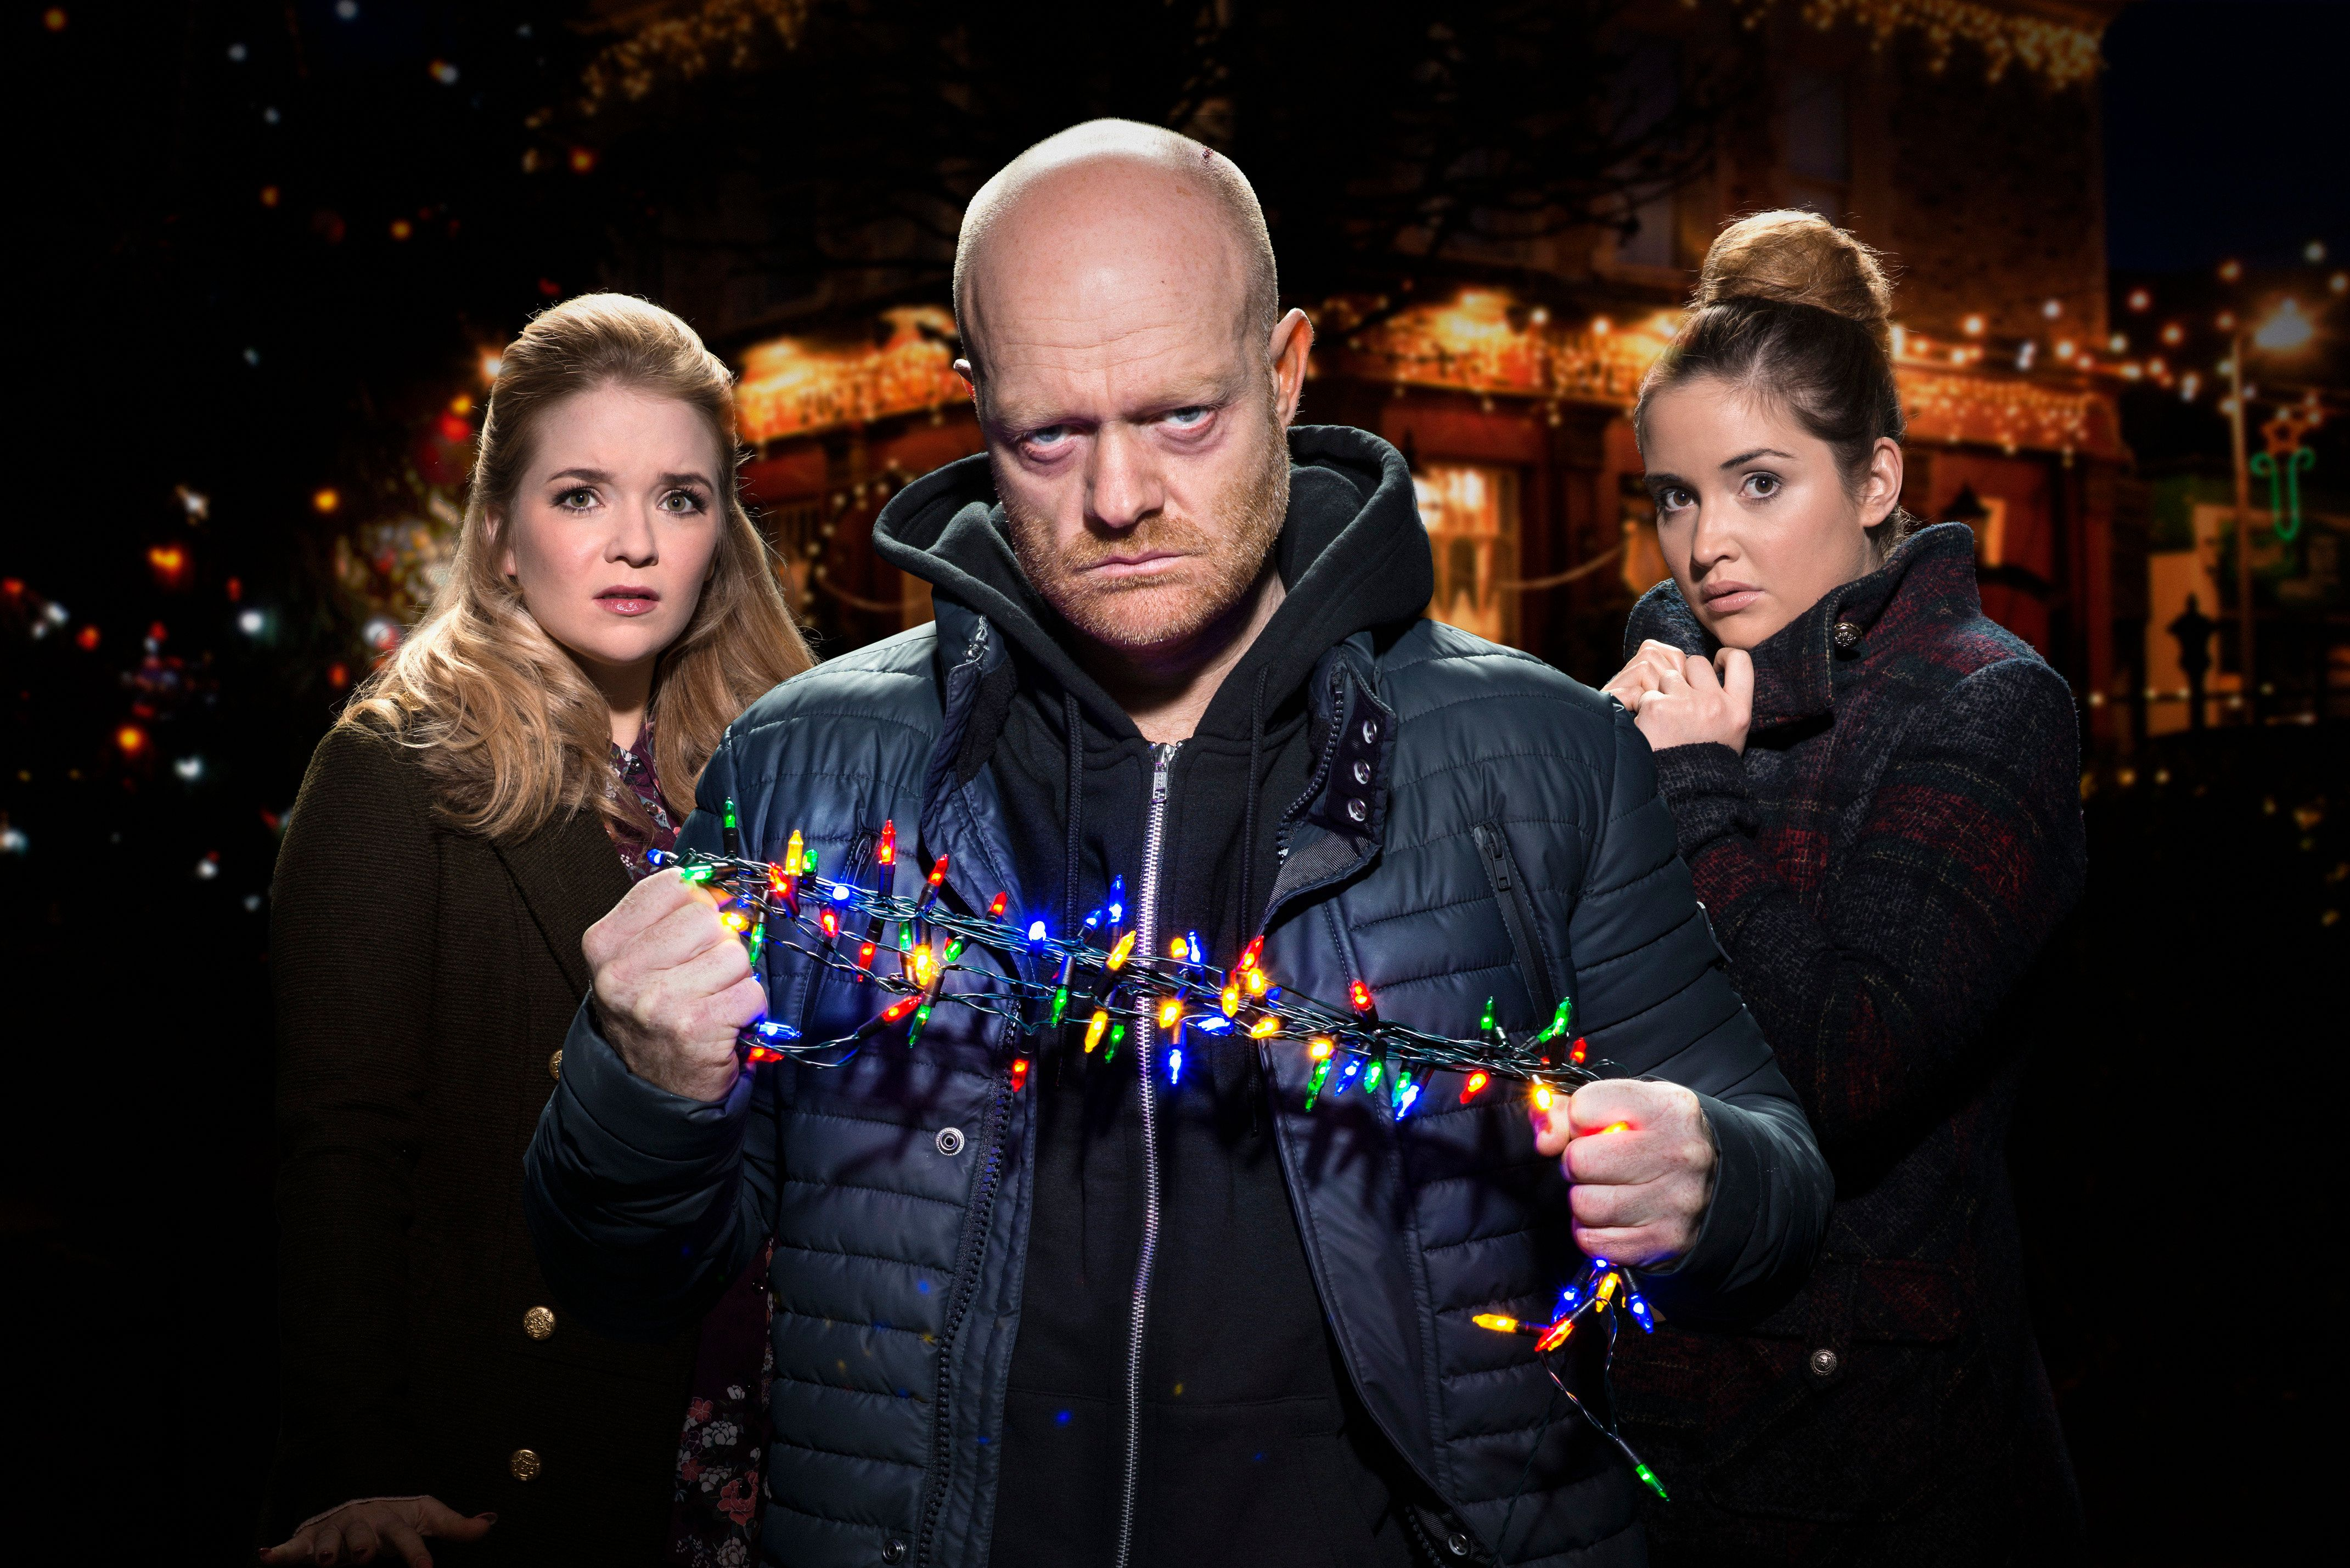 'EastEnders' Is On Its Way Back To Its Best, Following Jam-Packed Christmas